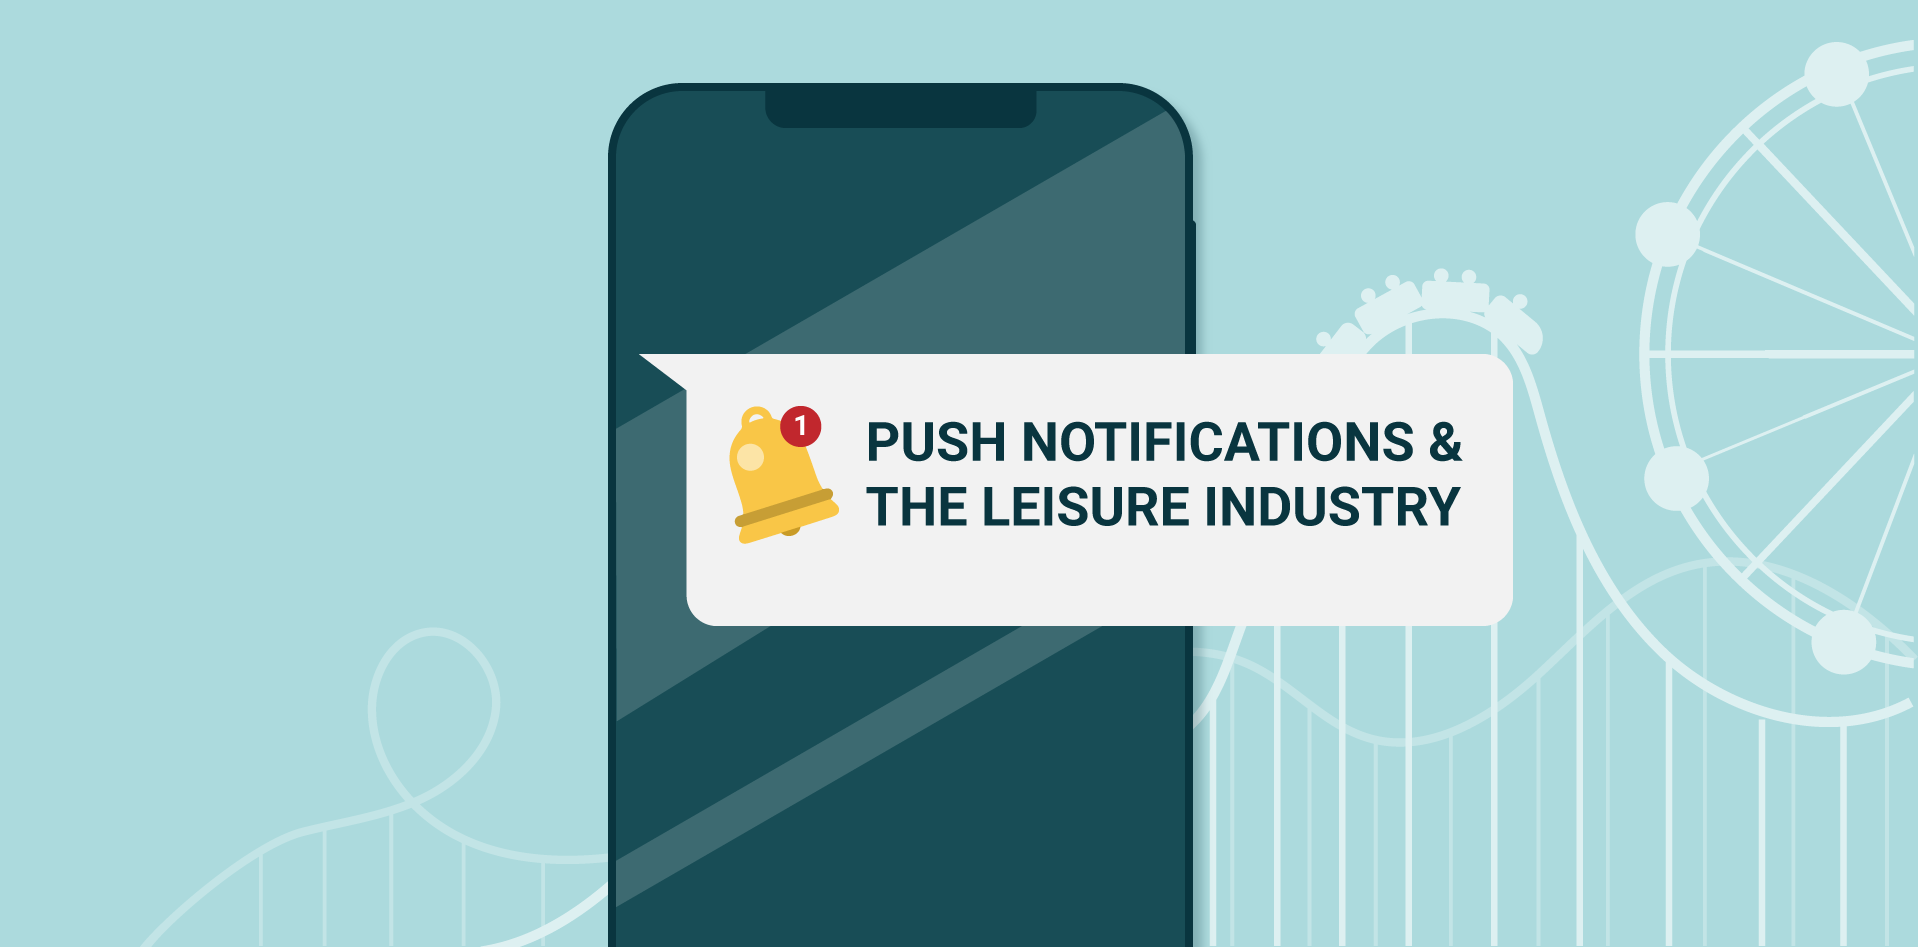 The Benefits of Push Notifications in the leisure industry